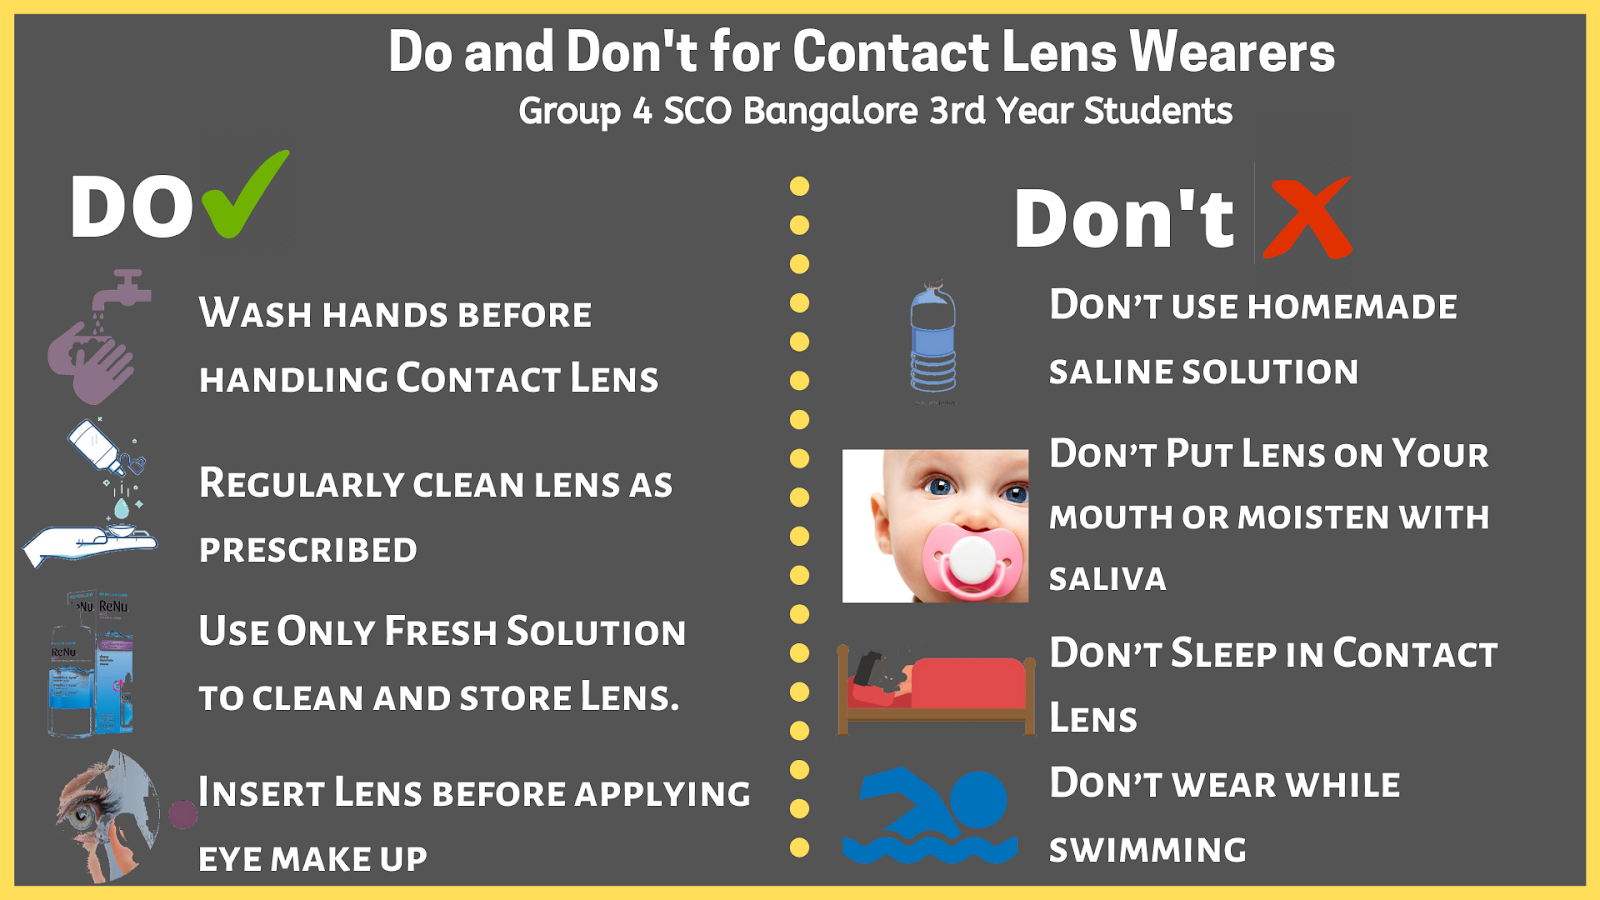 Do and don't of contact lens wearer